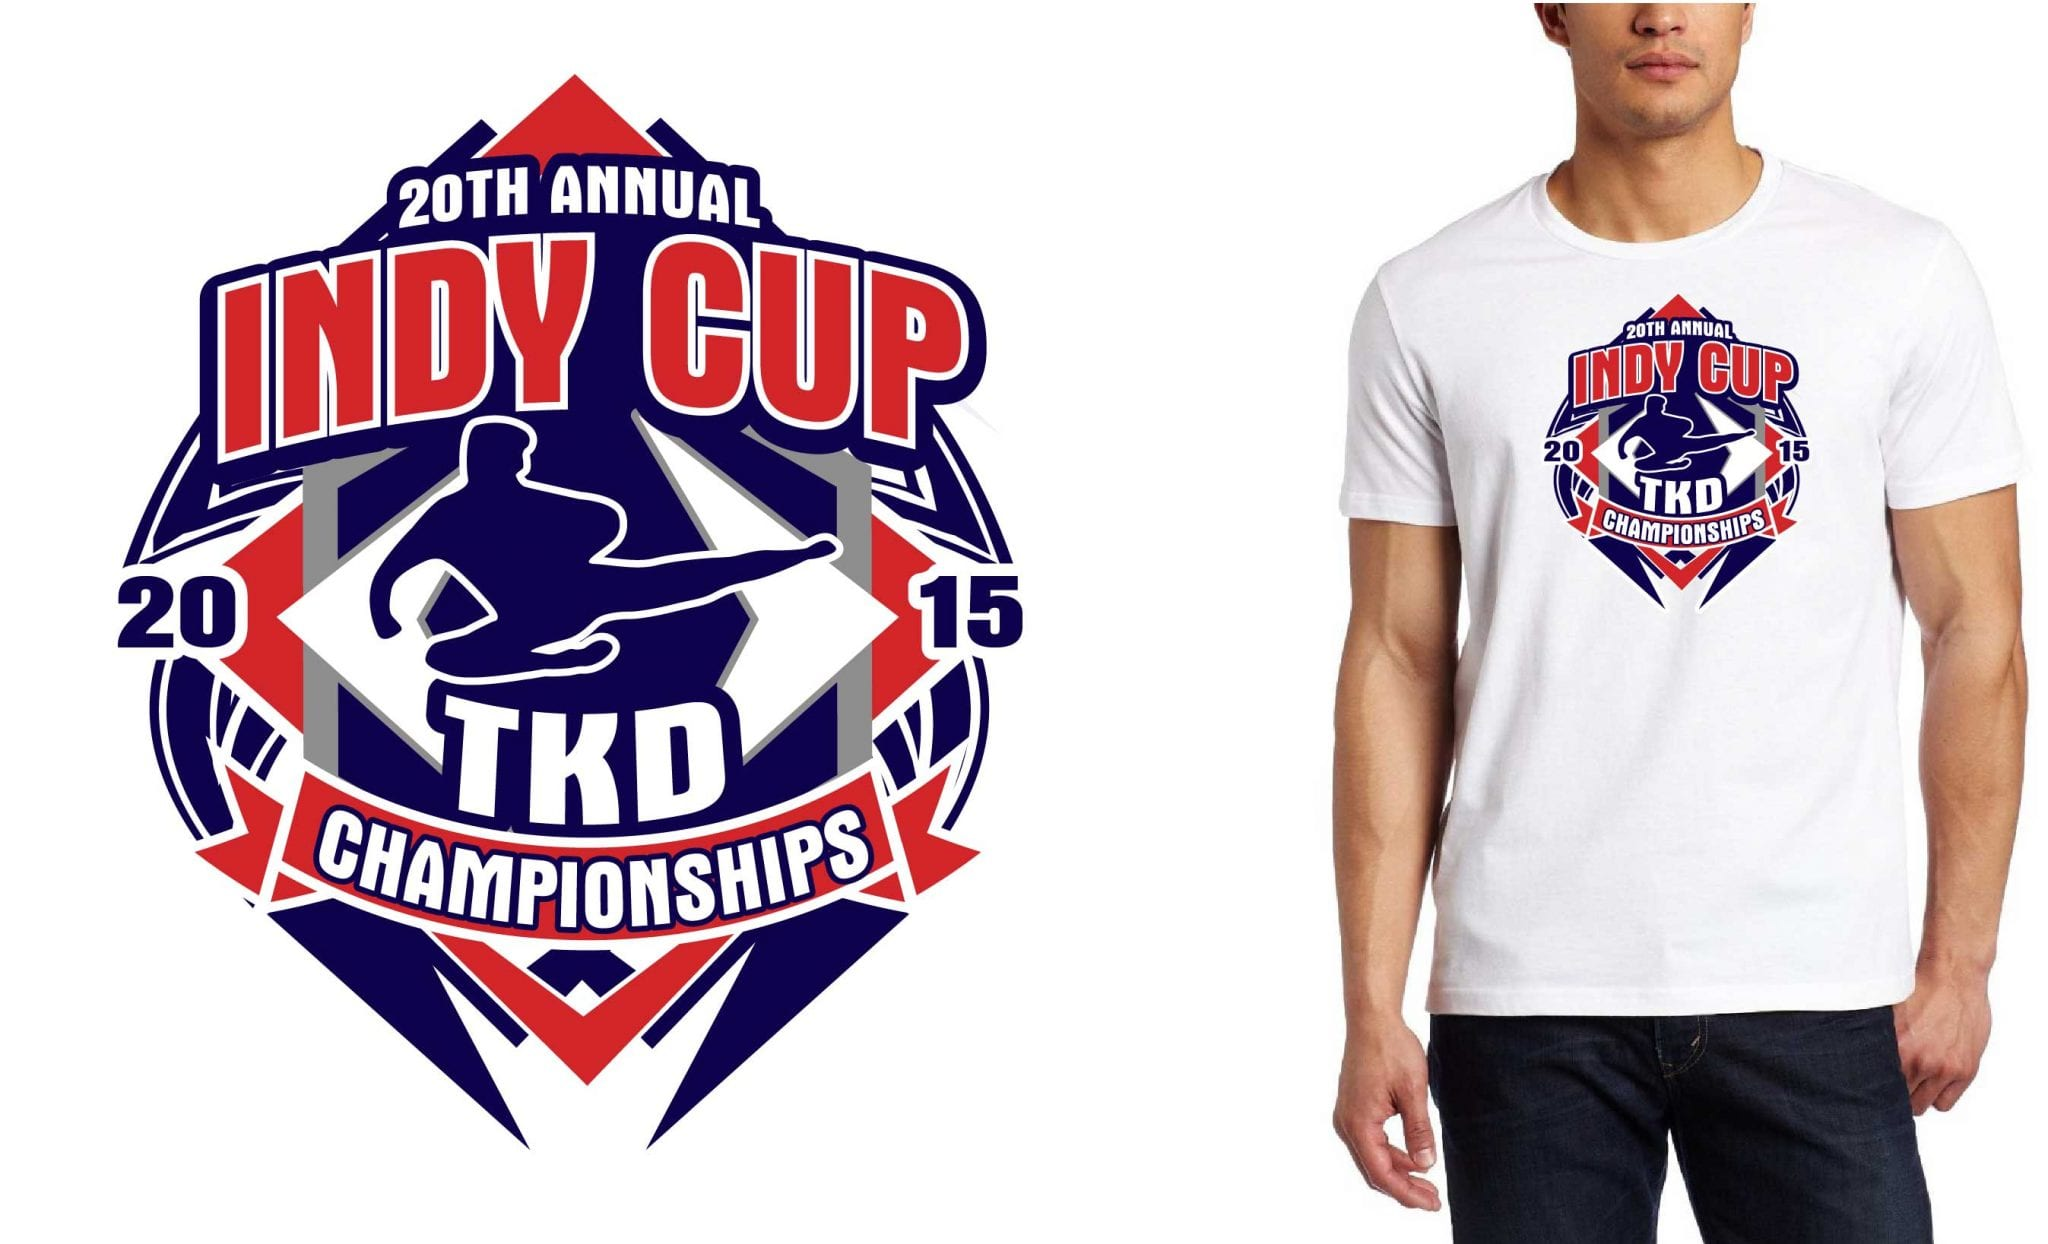 2015 20th Indy Cup TKD Championships tshirt design